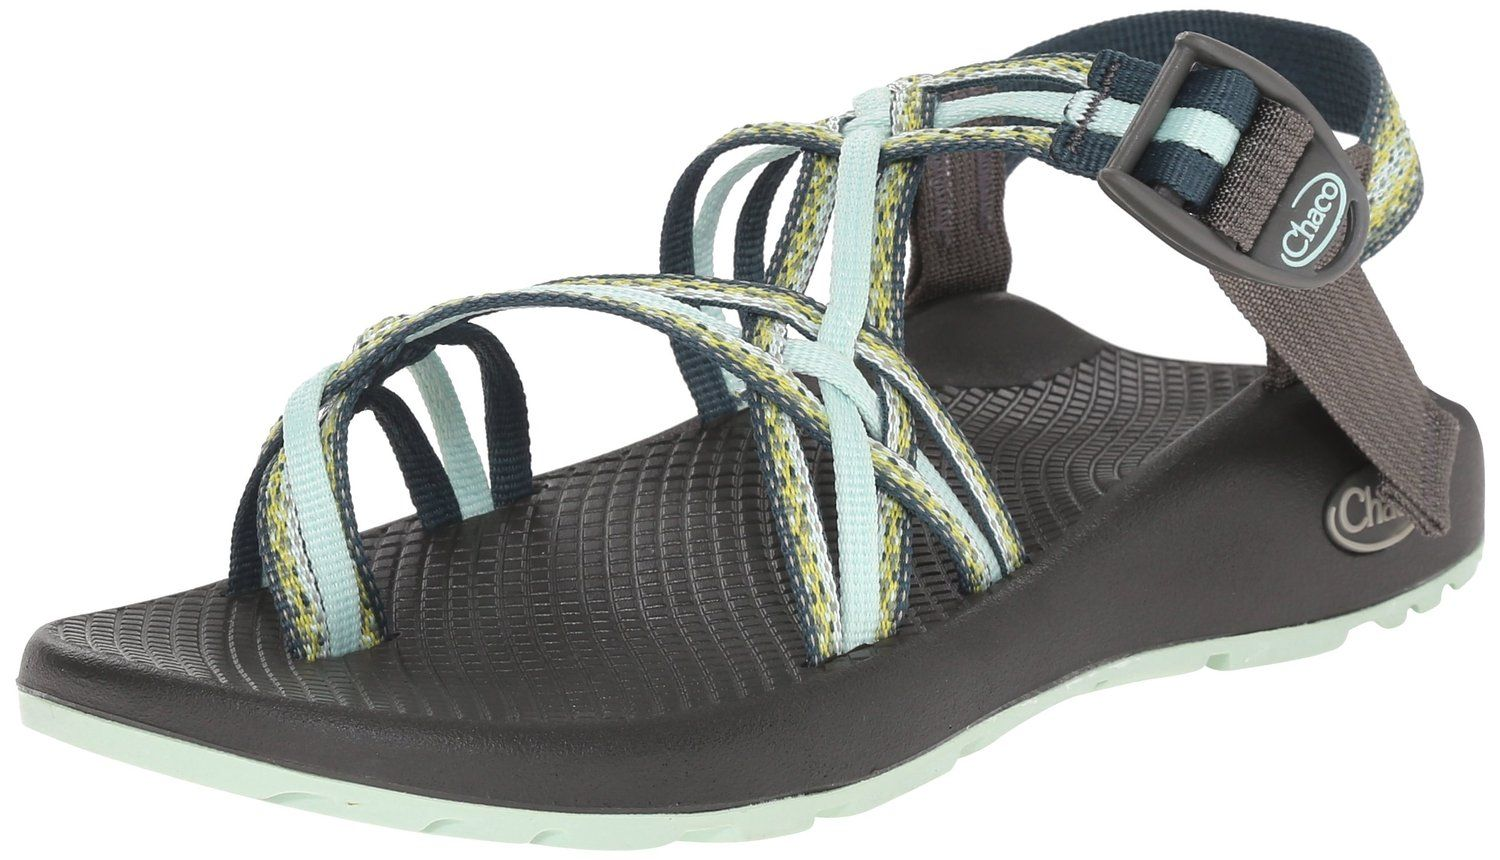 152692e367bb9 Chaco Women's ZX3 Classic Sport Sandal * Insider's special review ...